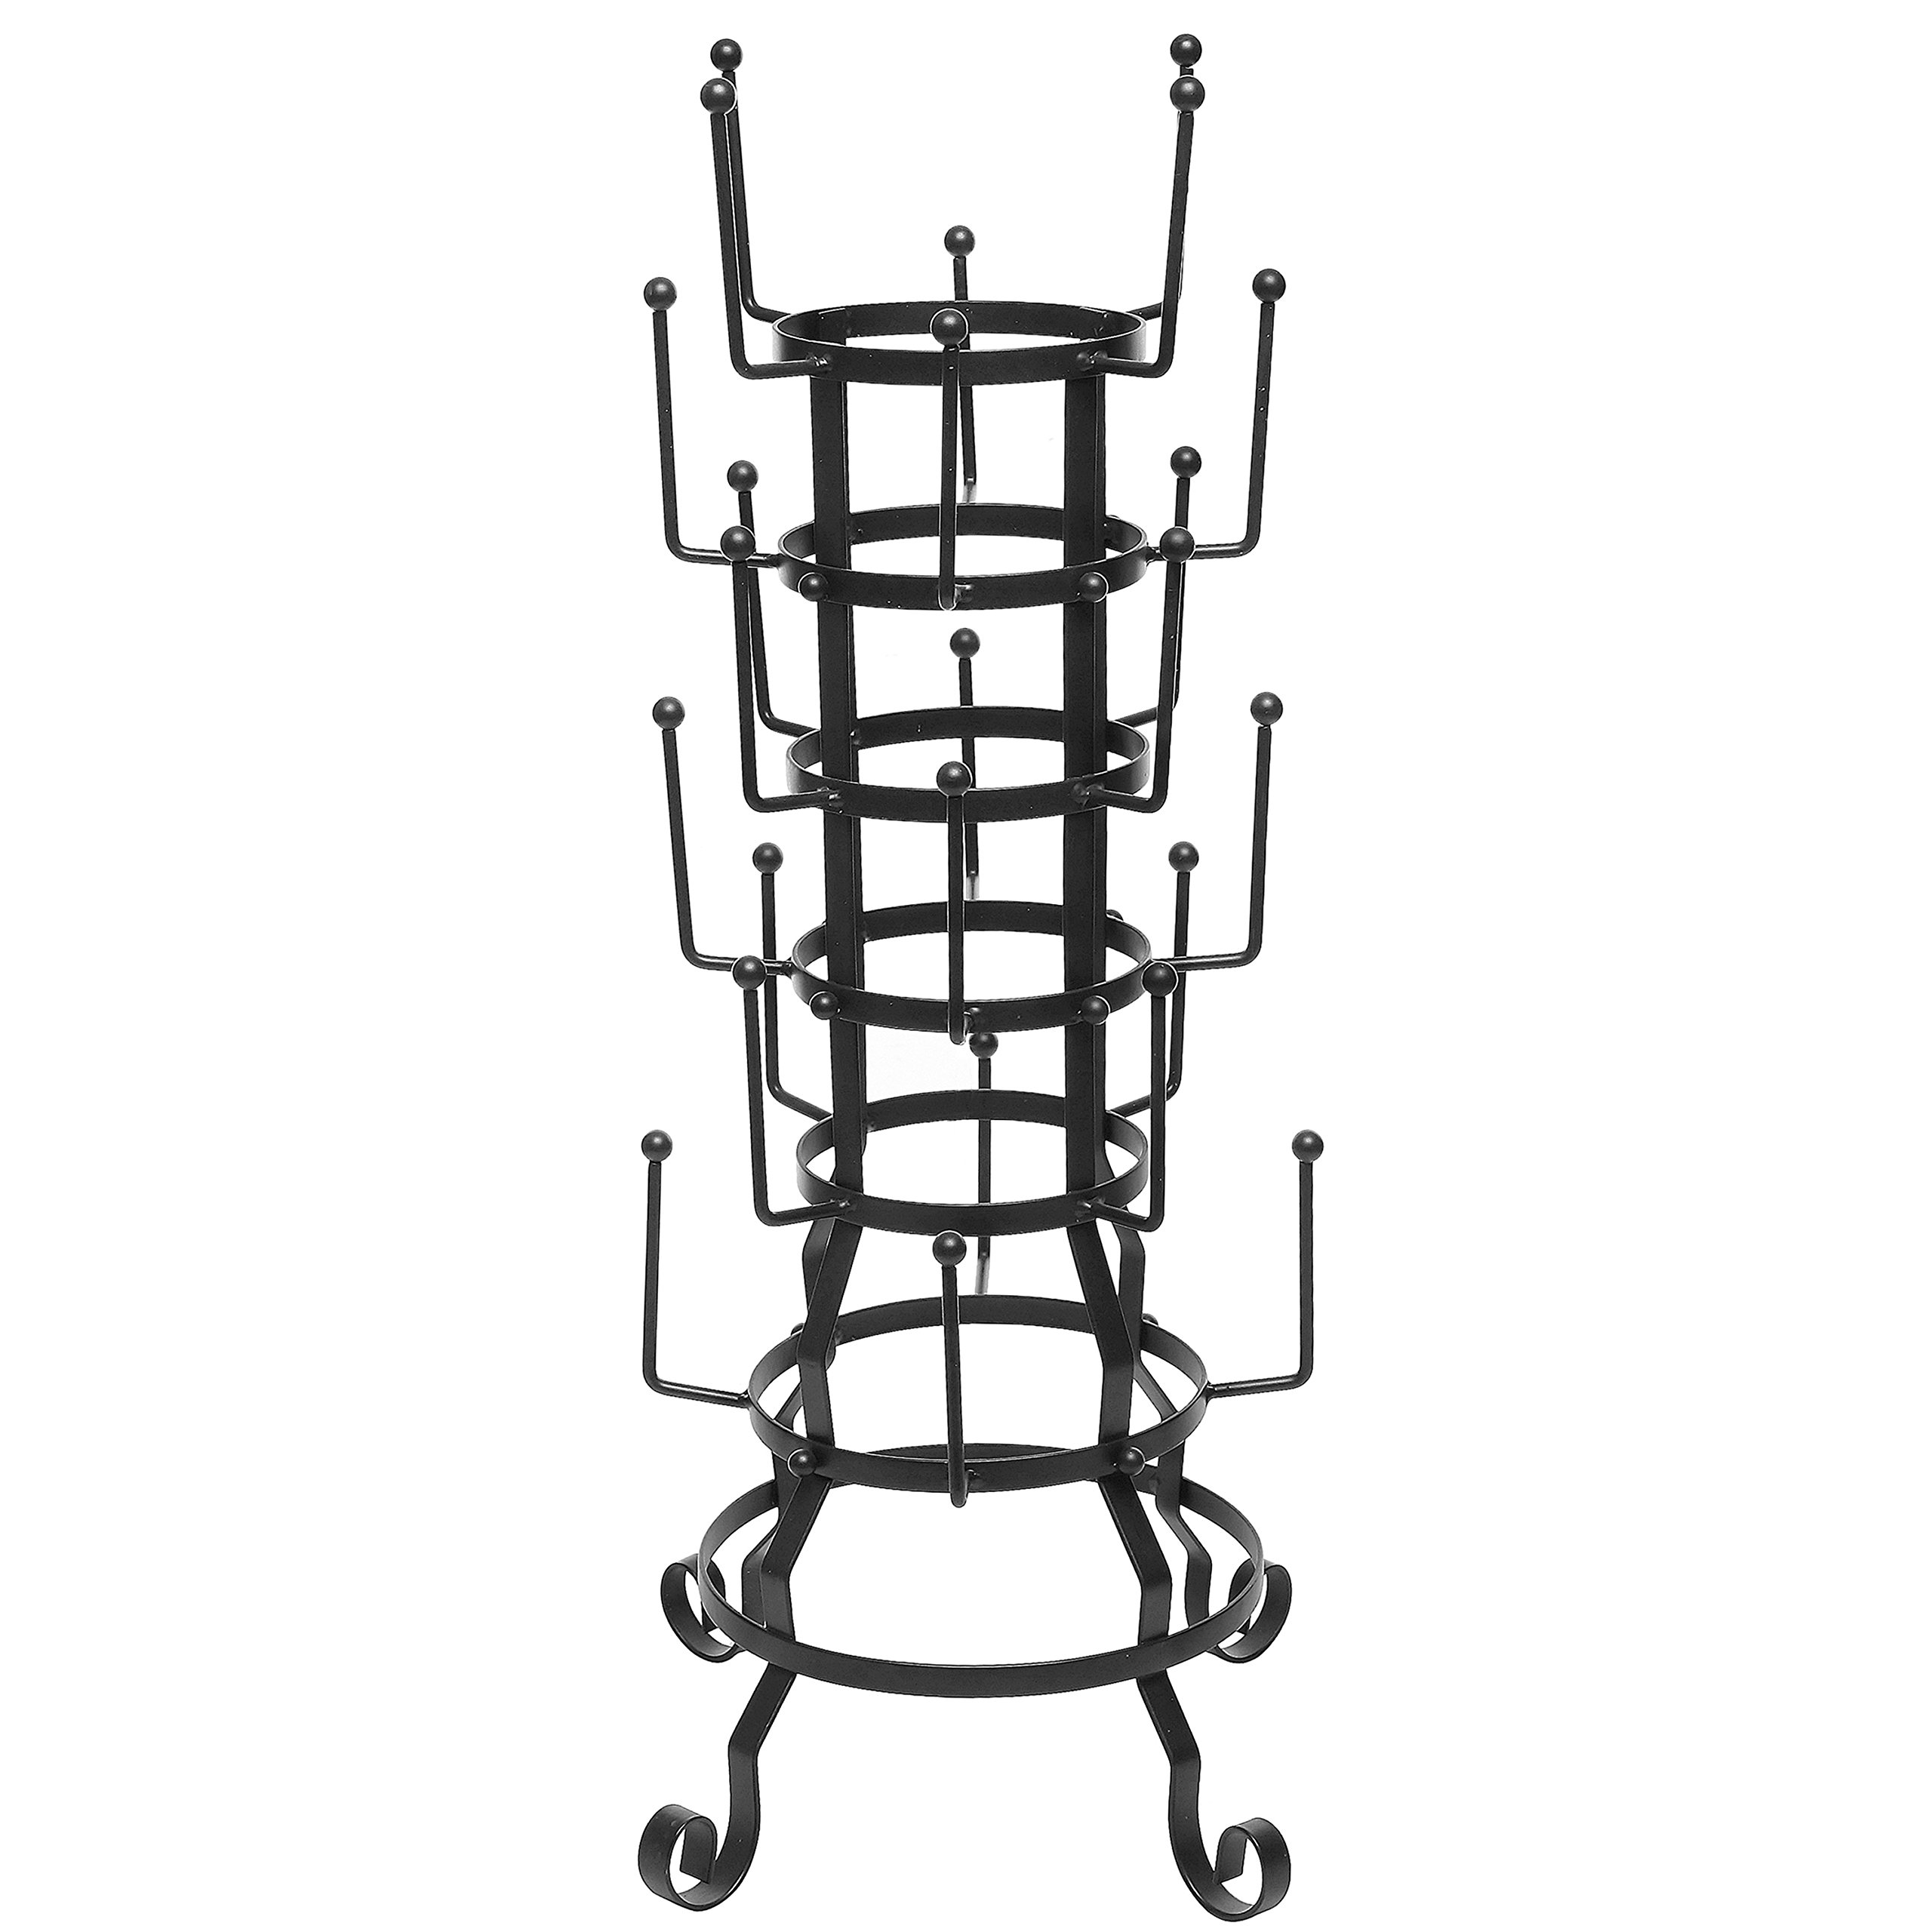 MyGift Vintage Rustic Black Iron Mug/Glass/Cup/Bottle Hanger Hooks Drying Rack Organizer Stand